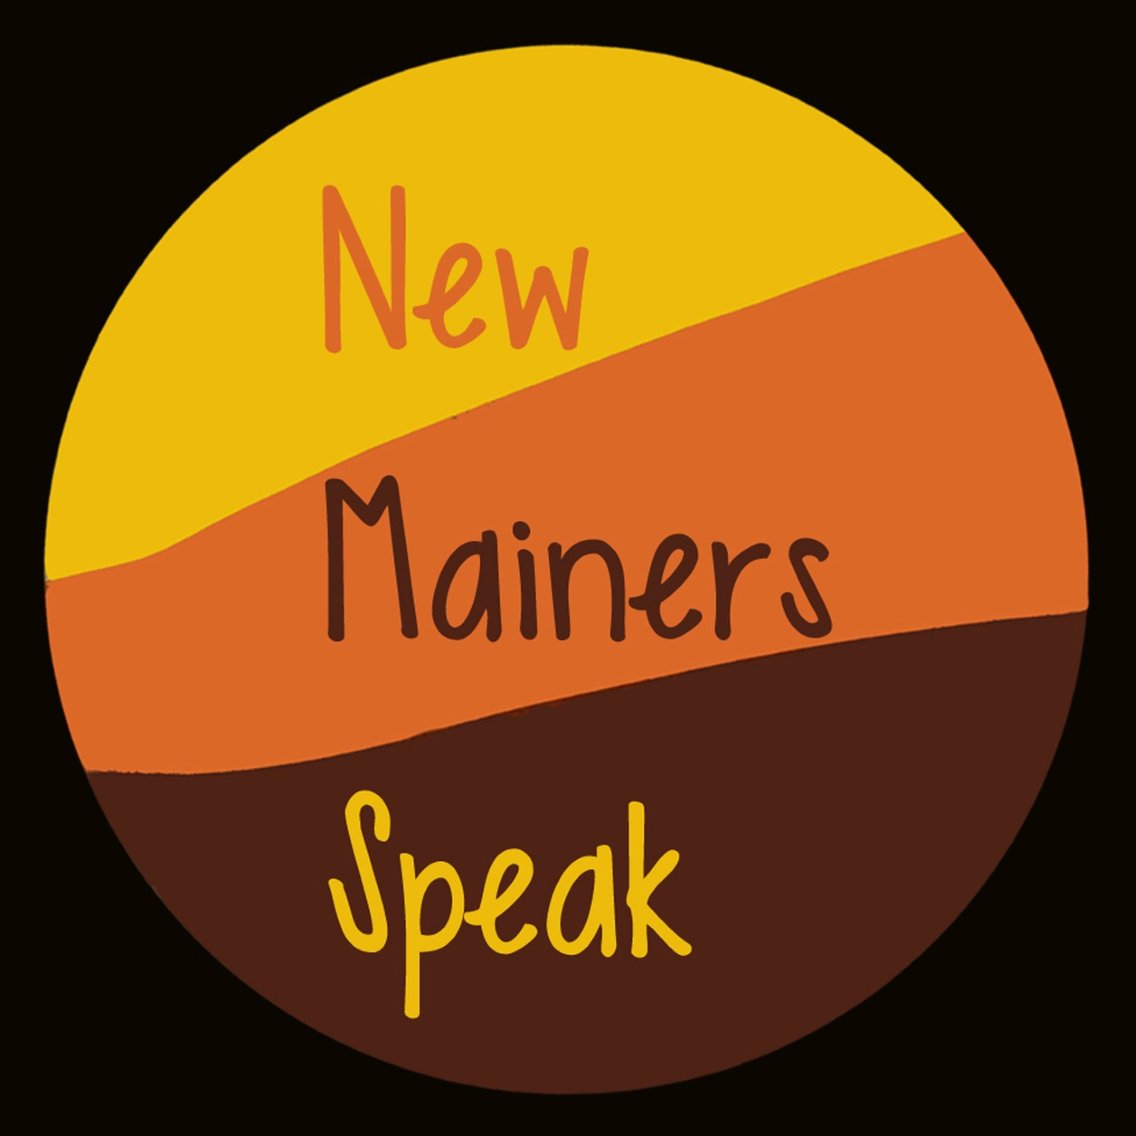 New Mainers Speak - Cover Image